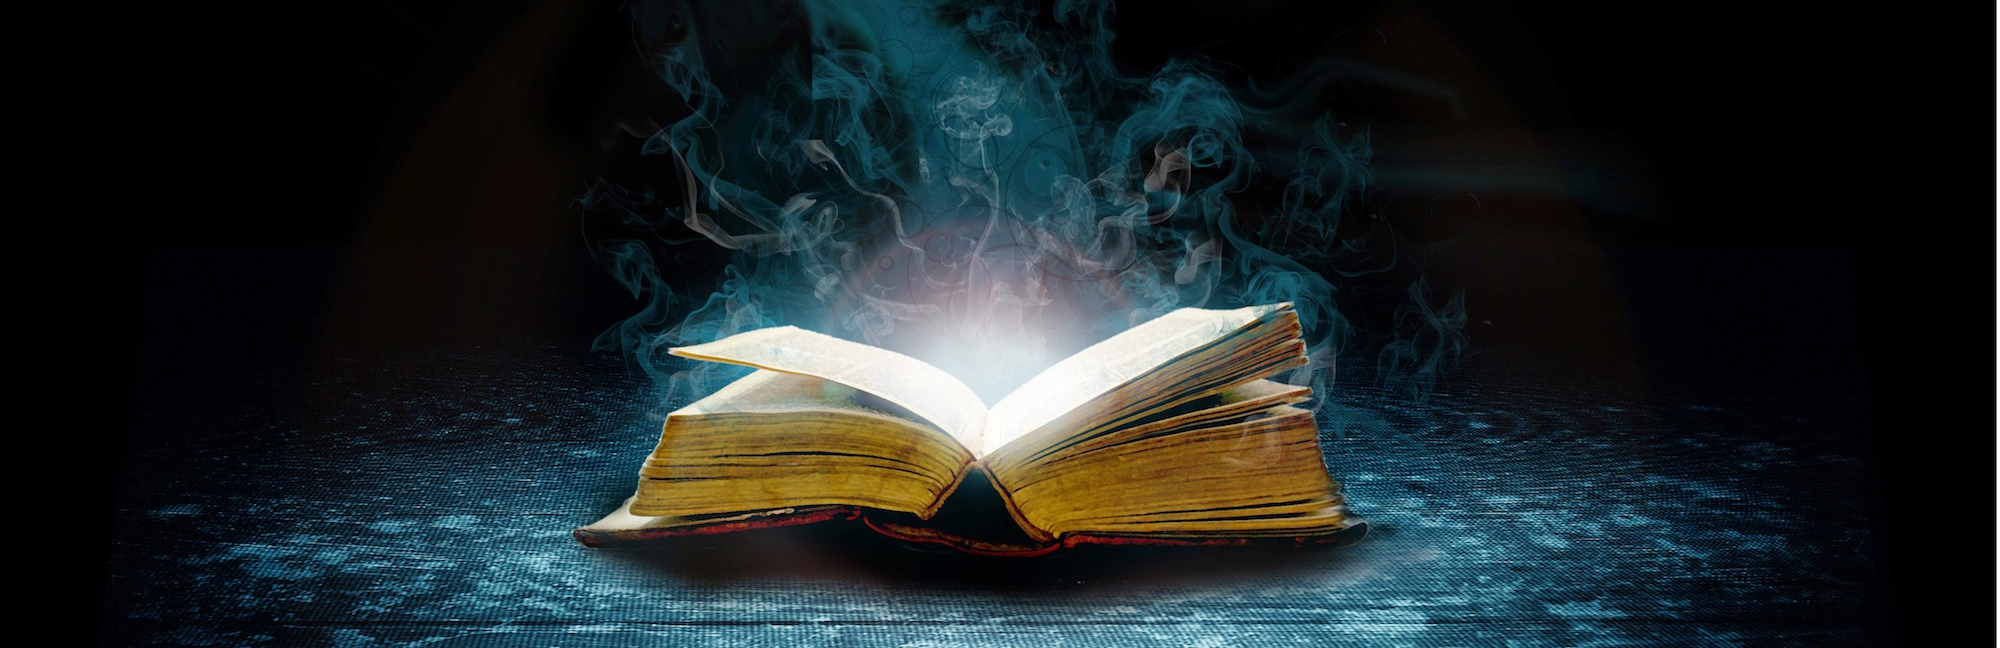 magic_book_by_colgreyis-d4gg46f